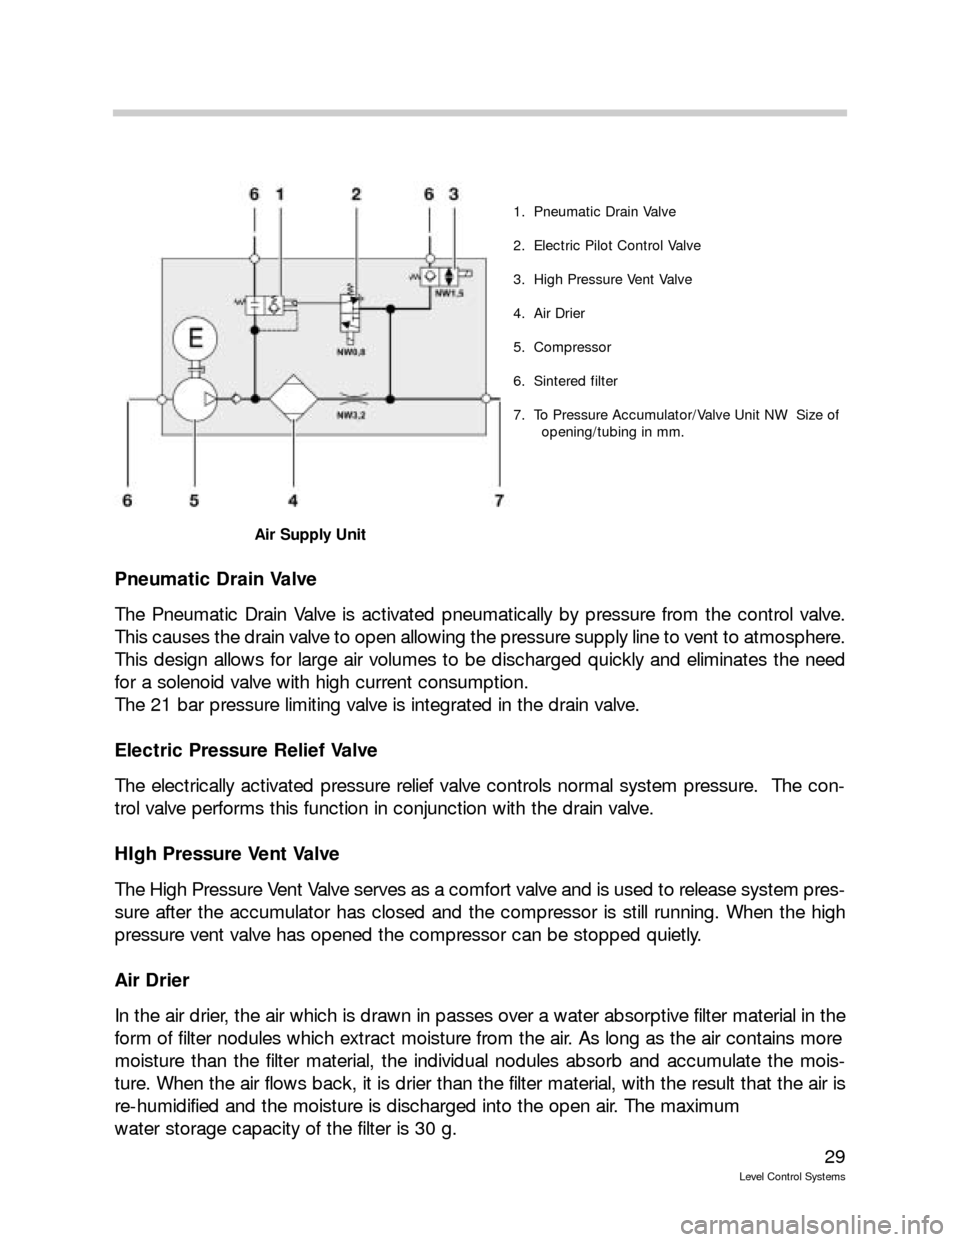 BMW 745LI 2007 E66 Level Control System Manual, Page 29